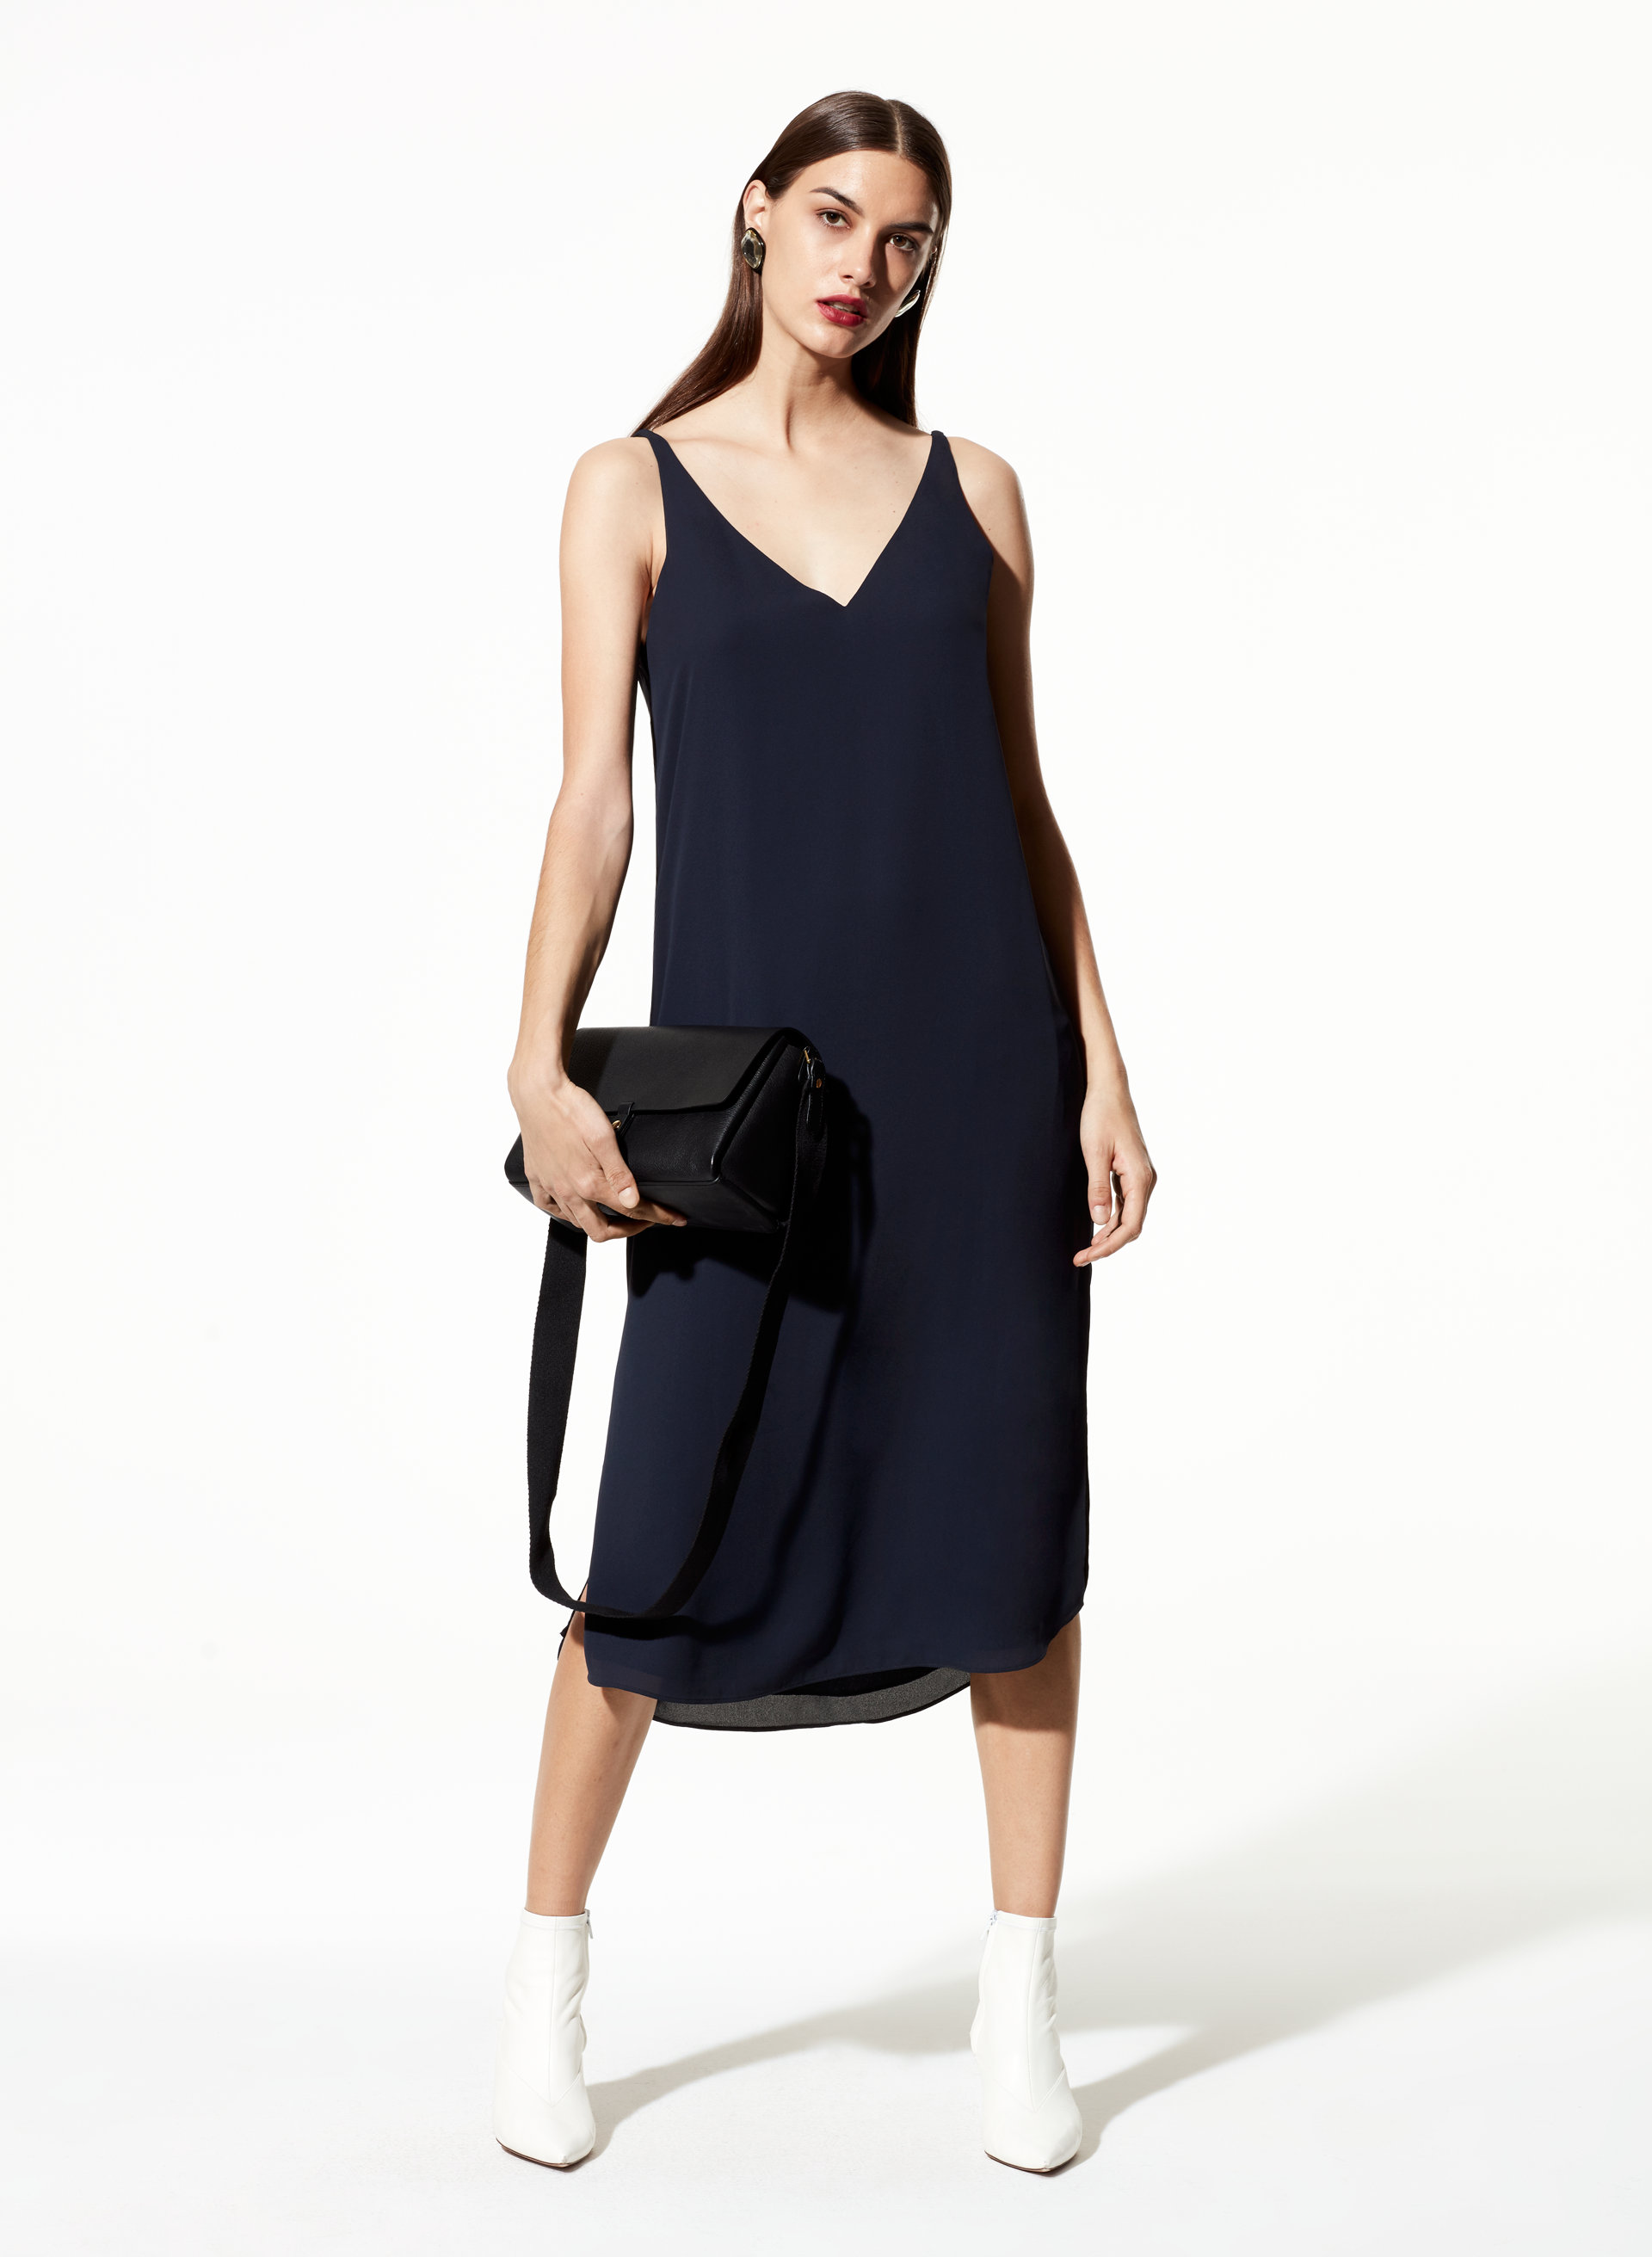 b2ccadbcdbca0 ... Babaton JEREMY DRESS | Aritzia. JEREMY DRESS